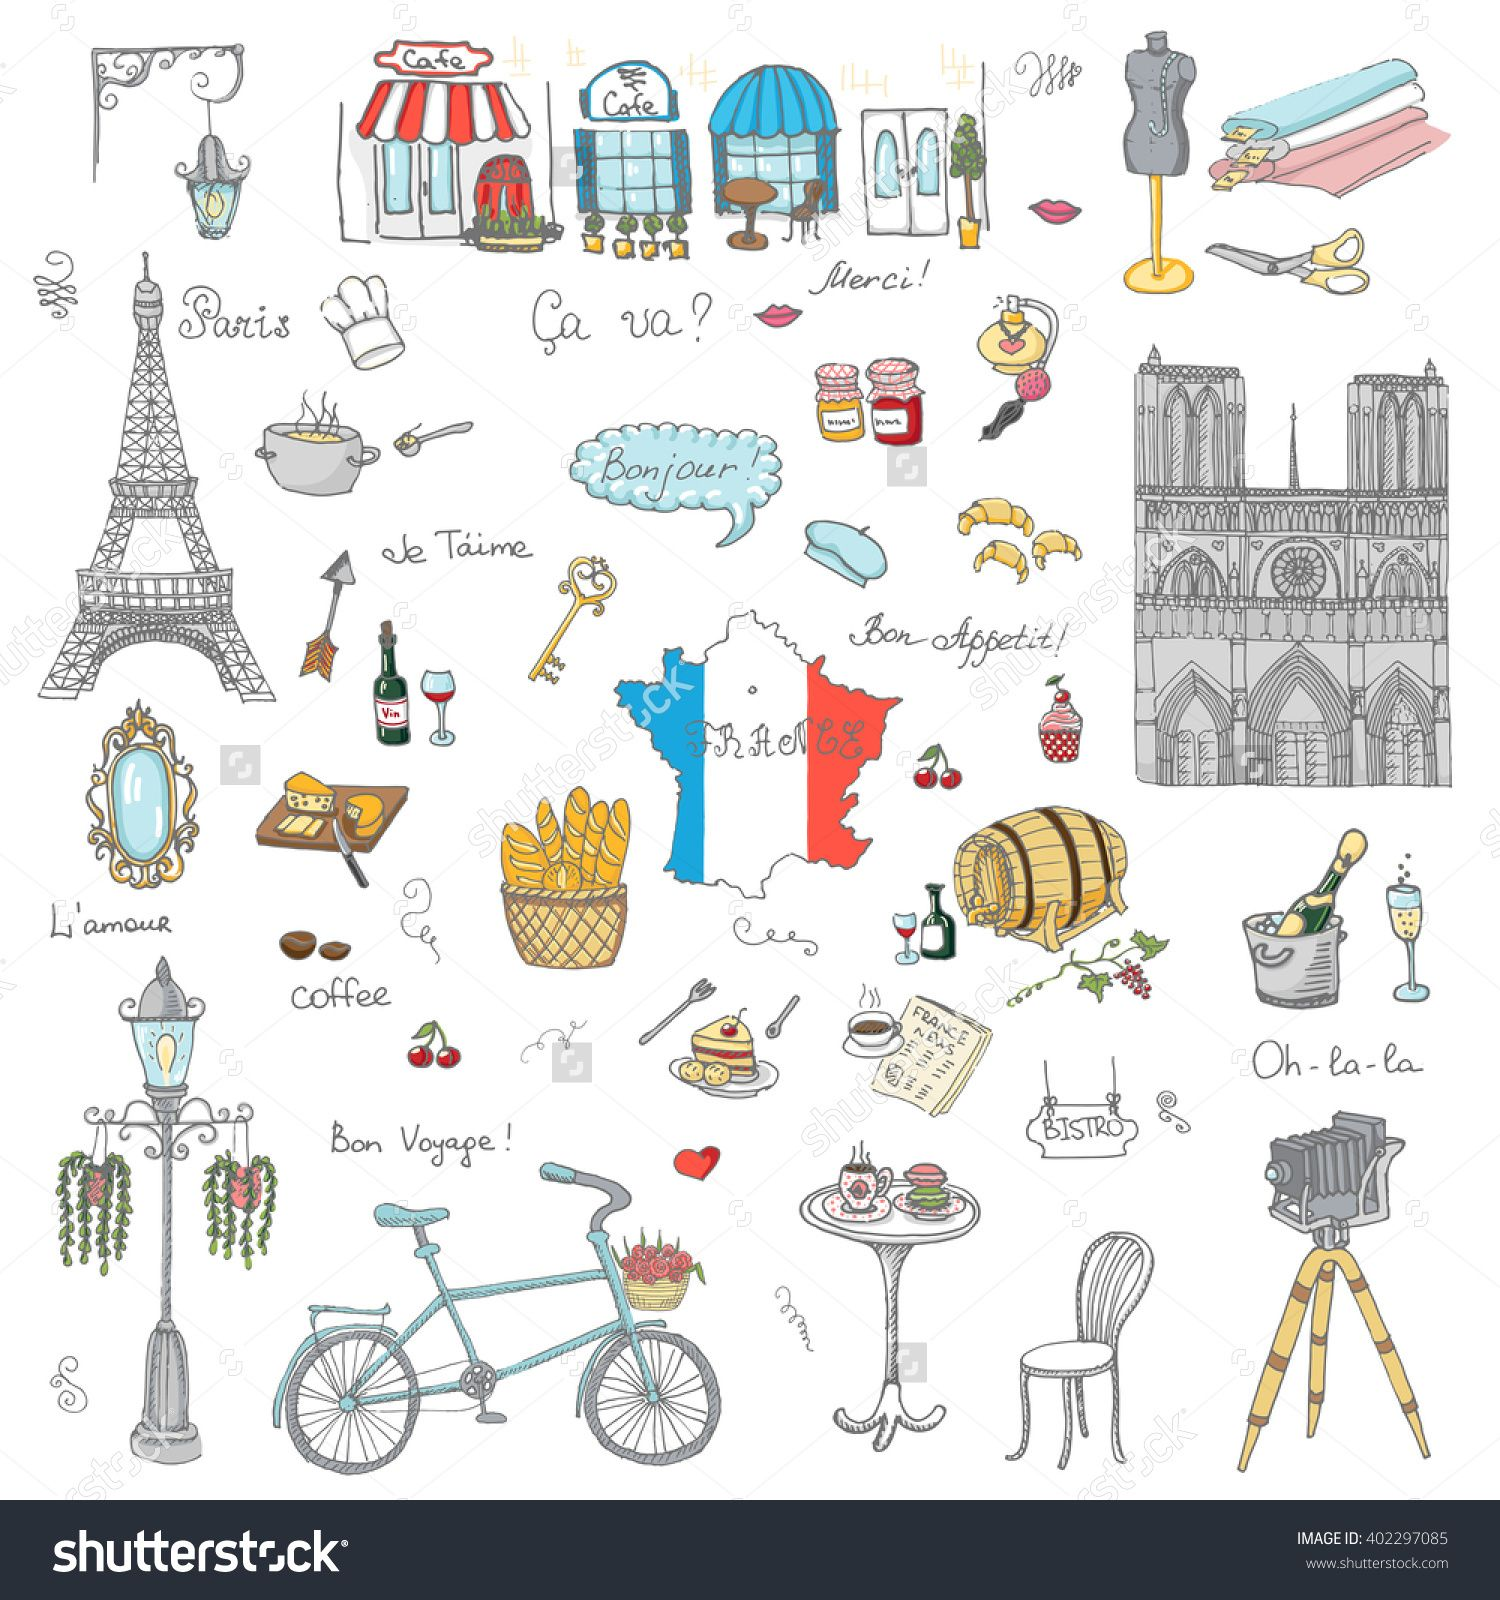 French clipart simple. Set of hand drawn